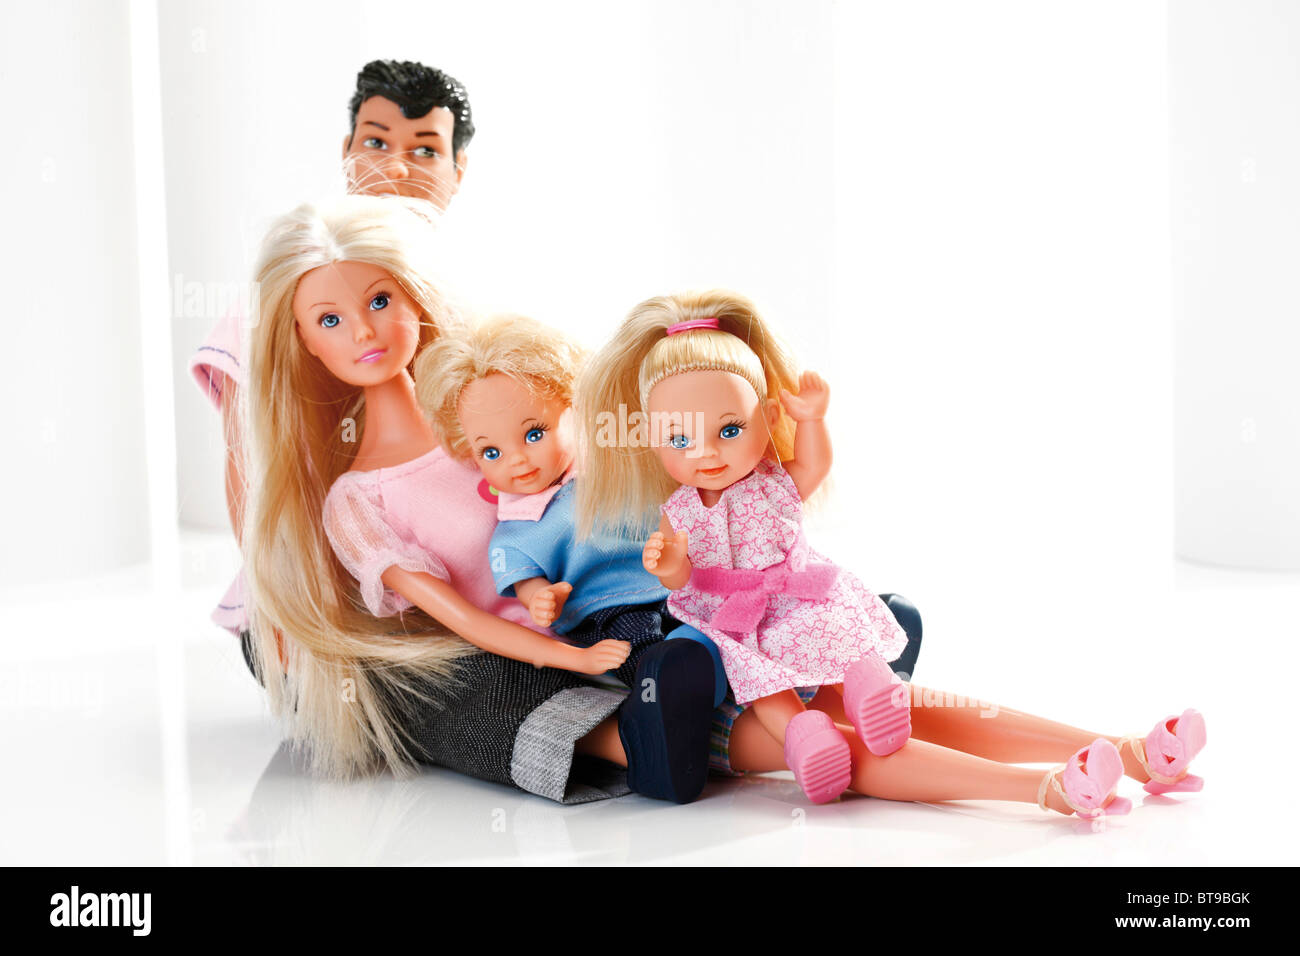 Symbolic image of a young family, children and parents, dolls - Stock Image